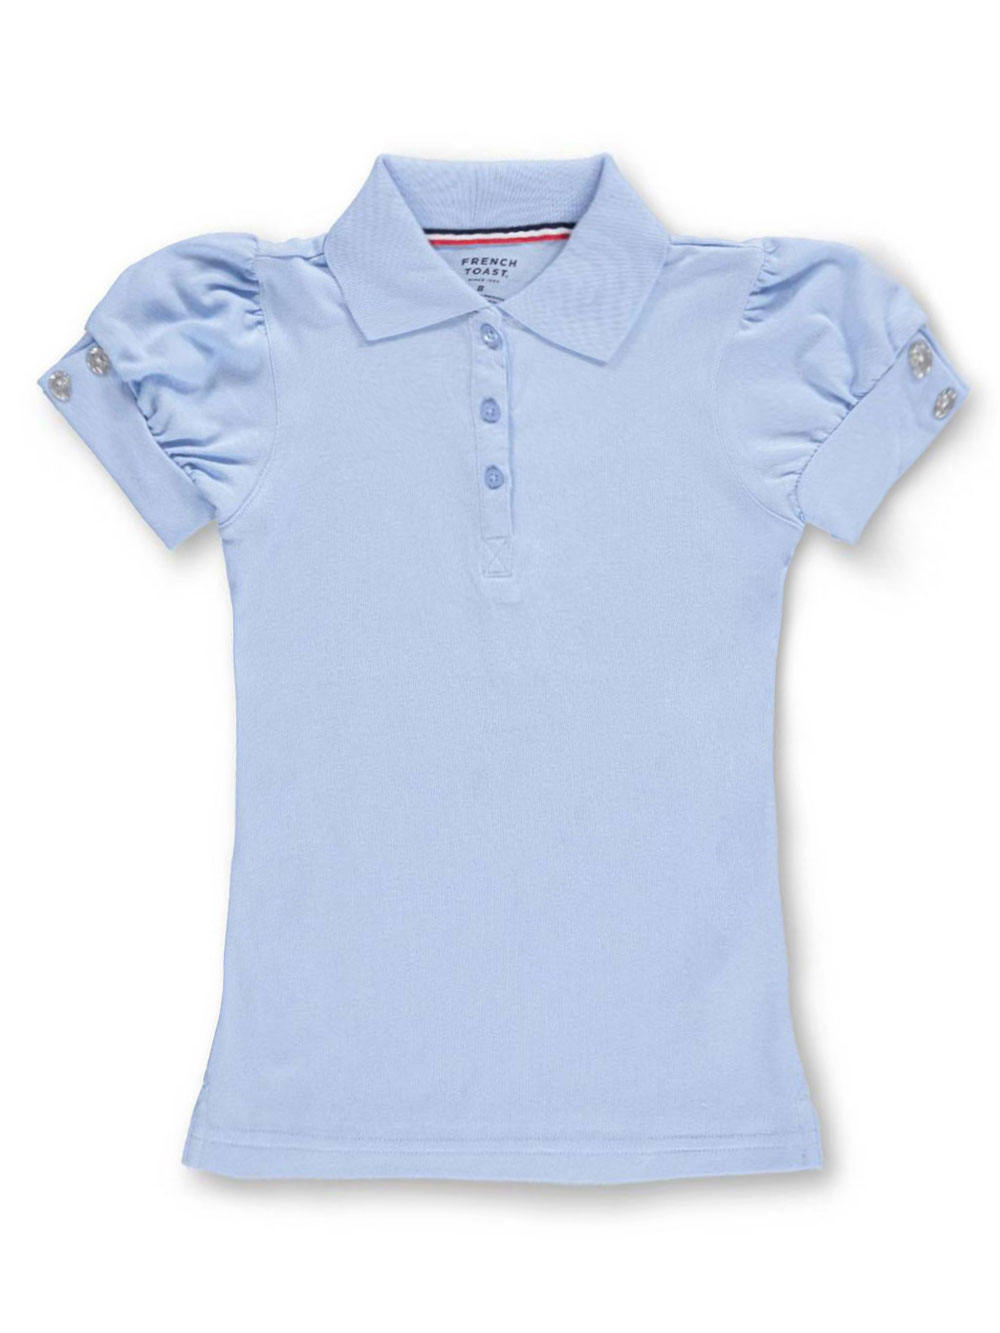 Size 4t Knit Polos for Girls